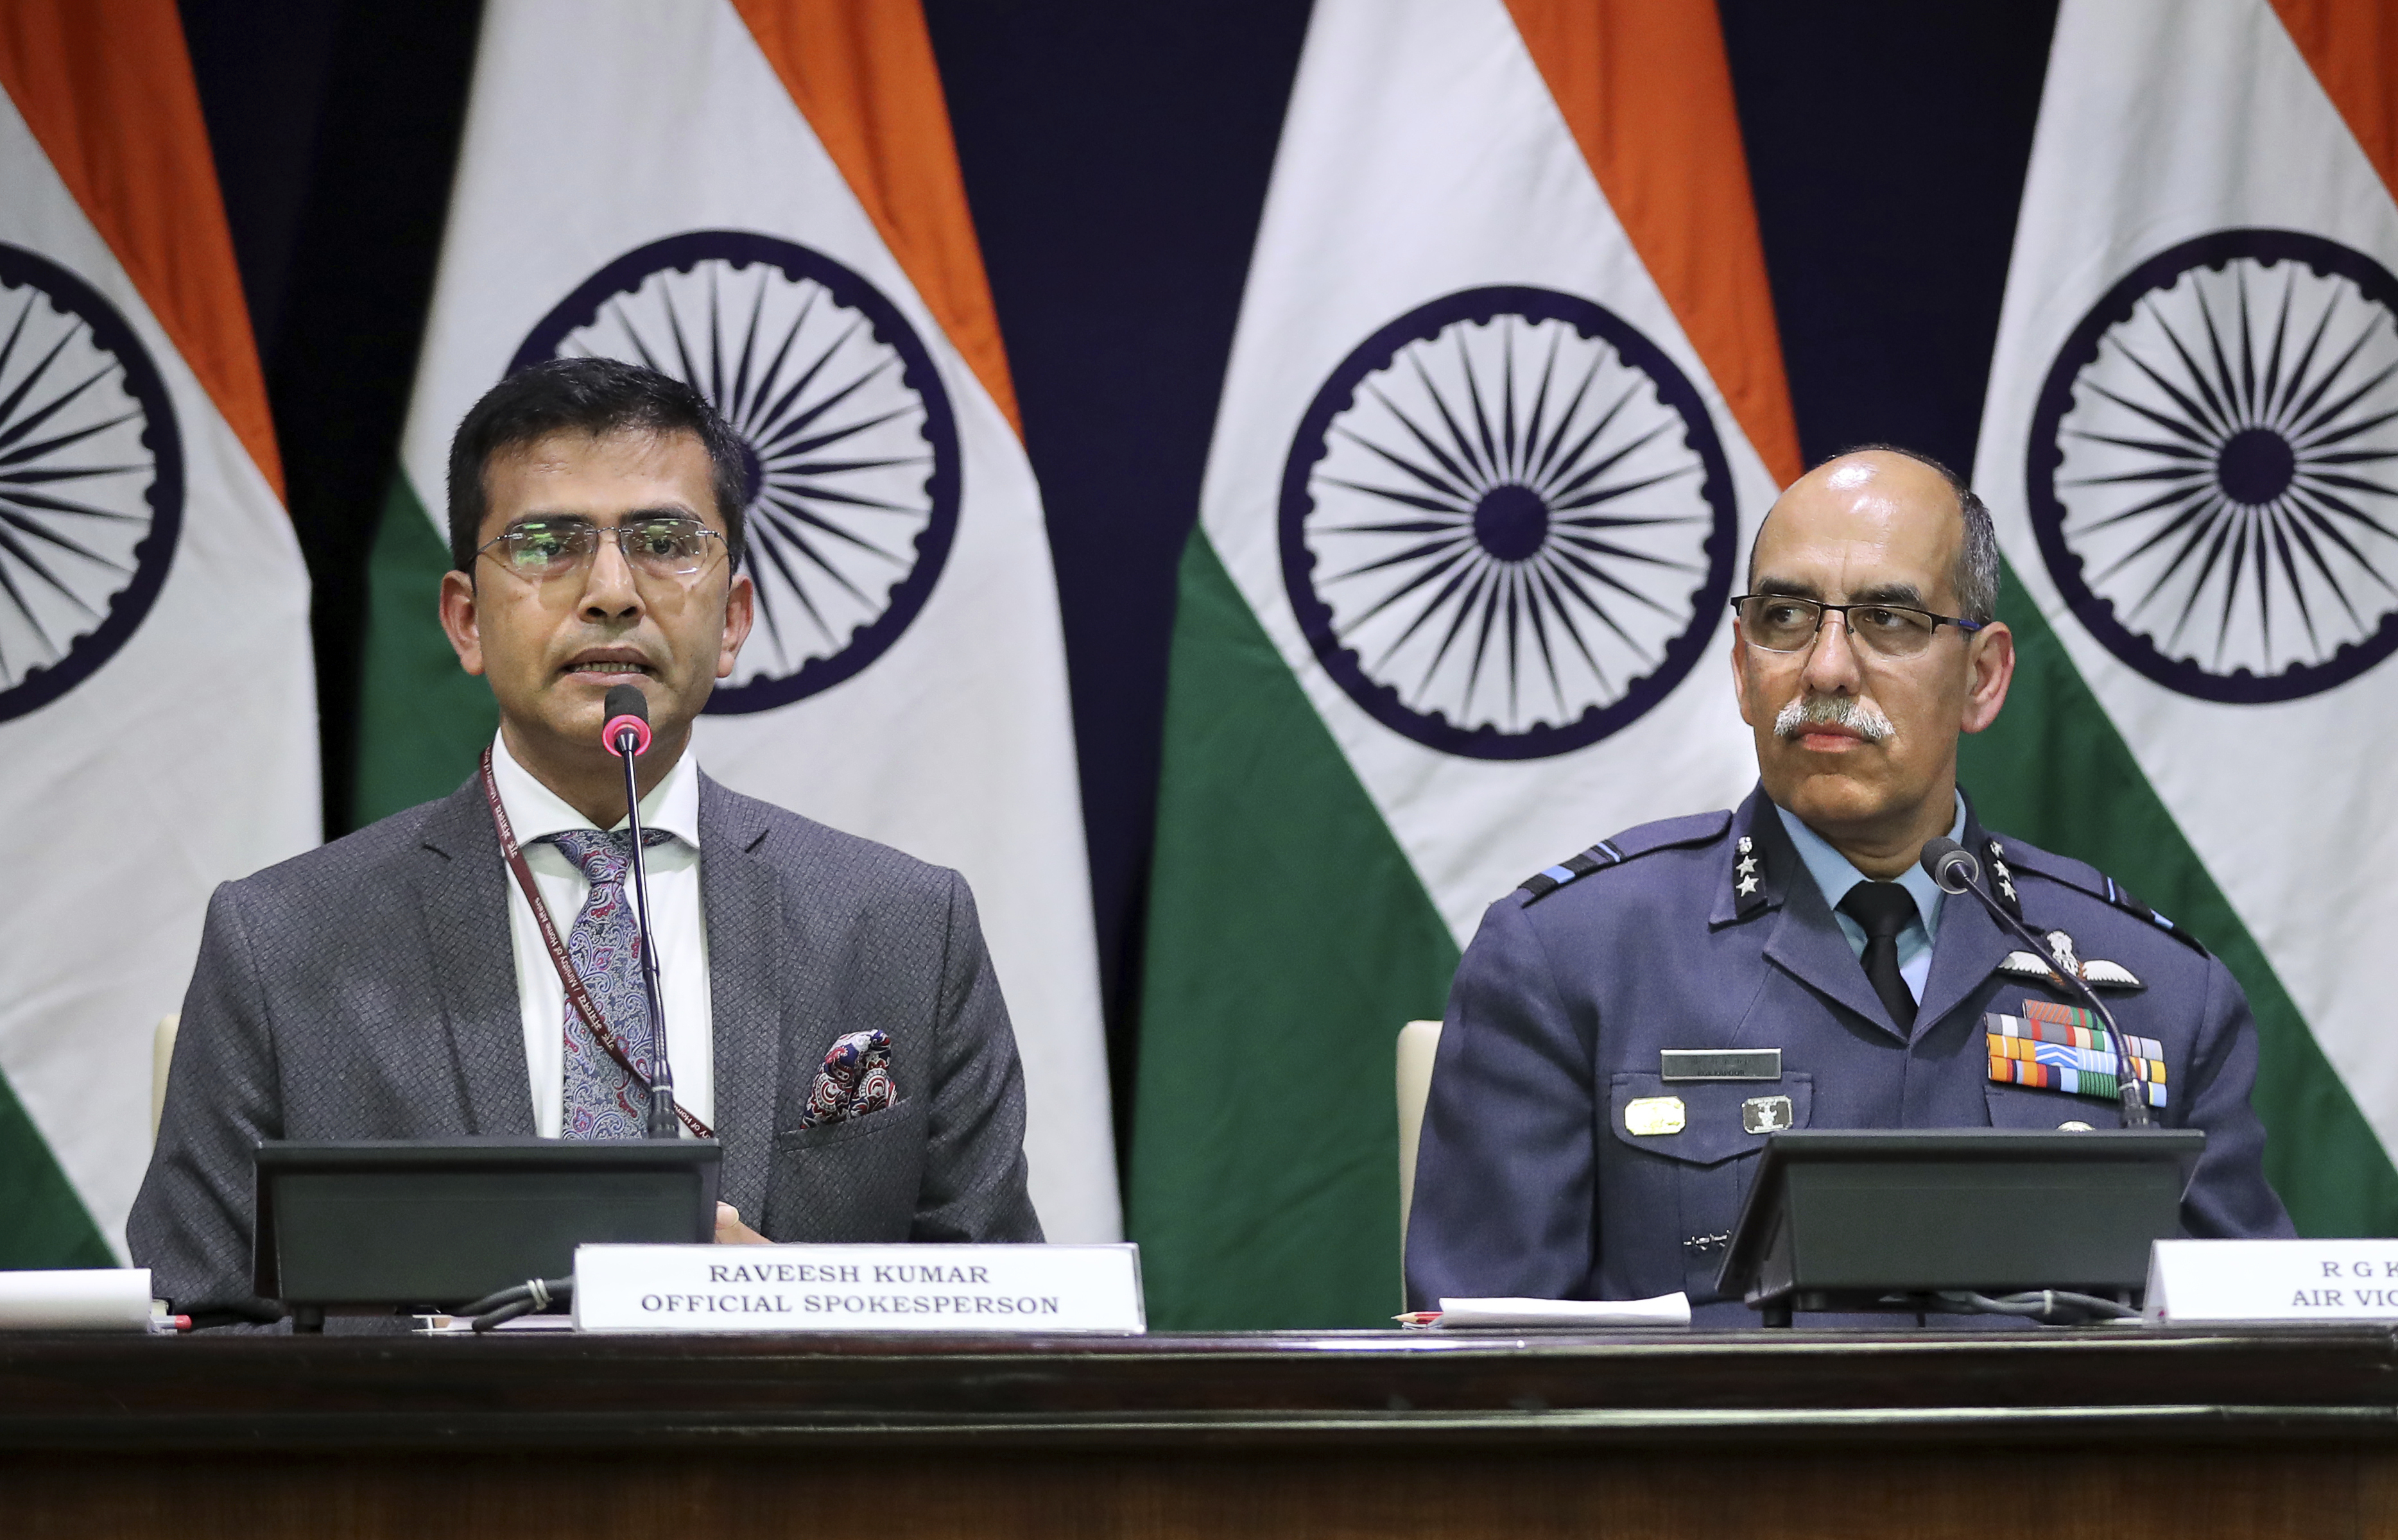 Indian Foreign Ministry spokesperson Raveesh Kumar, left, with Indian Air Force Air Vice Marshal R.G.K. Kapoor gives a statement in New Delhi, India, Wednesday, Feb. 27, 2019. Pakistan's air force shot down two Indian warplanes after they crossed the boundary between the two nuclear-armed rivals in the disputed territory of Kashmir on Wednesday and captured two Indian pilots, one of whom was injured, a Pakistani military spokesman said. Kumar said one of its Mig-21 fighter aircraft was missing and that India was still